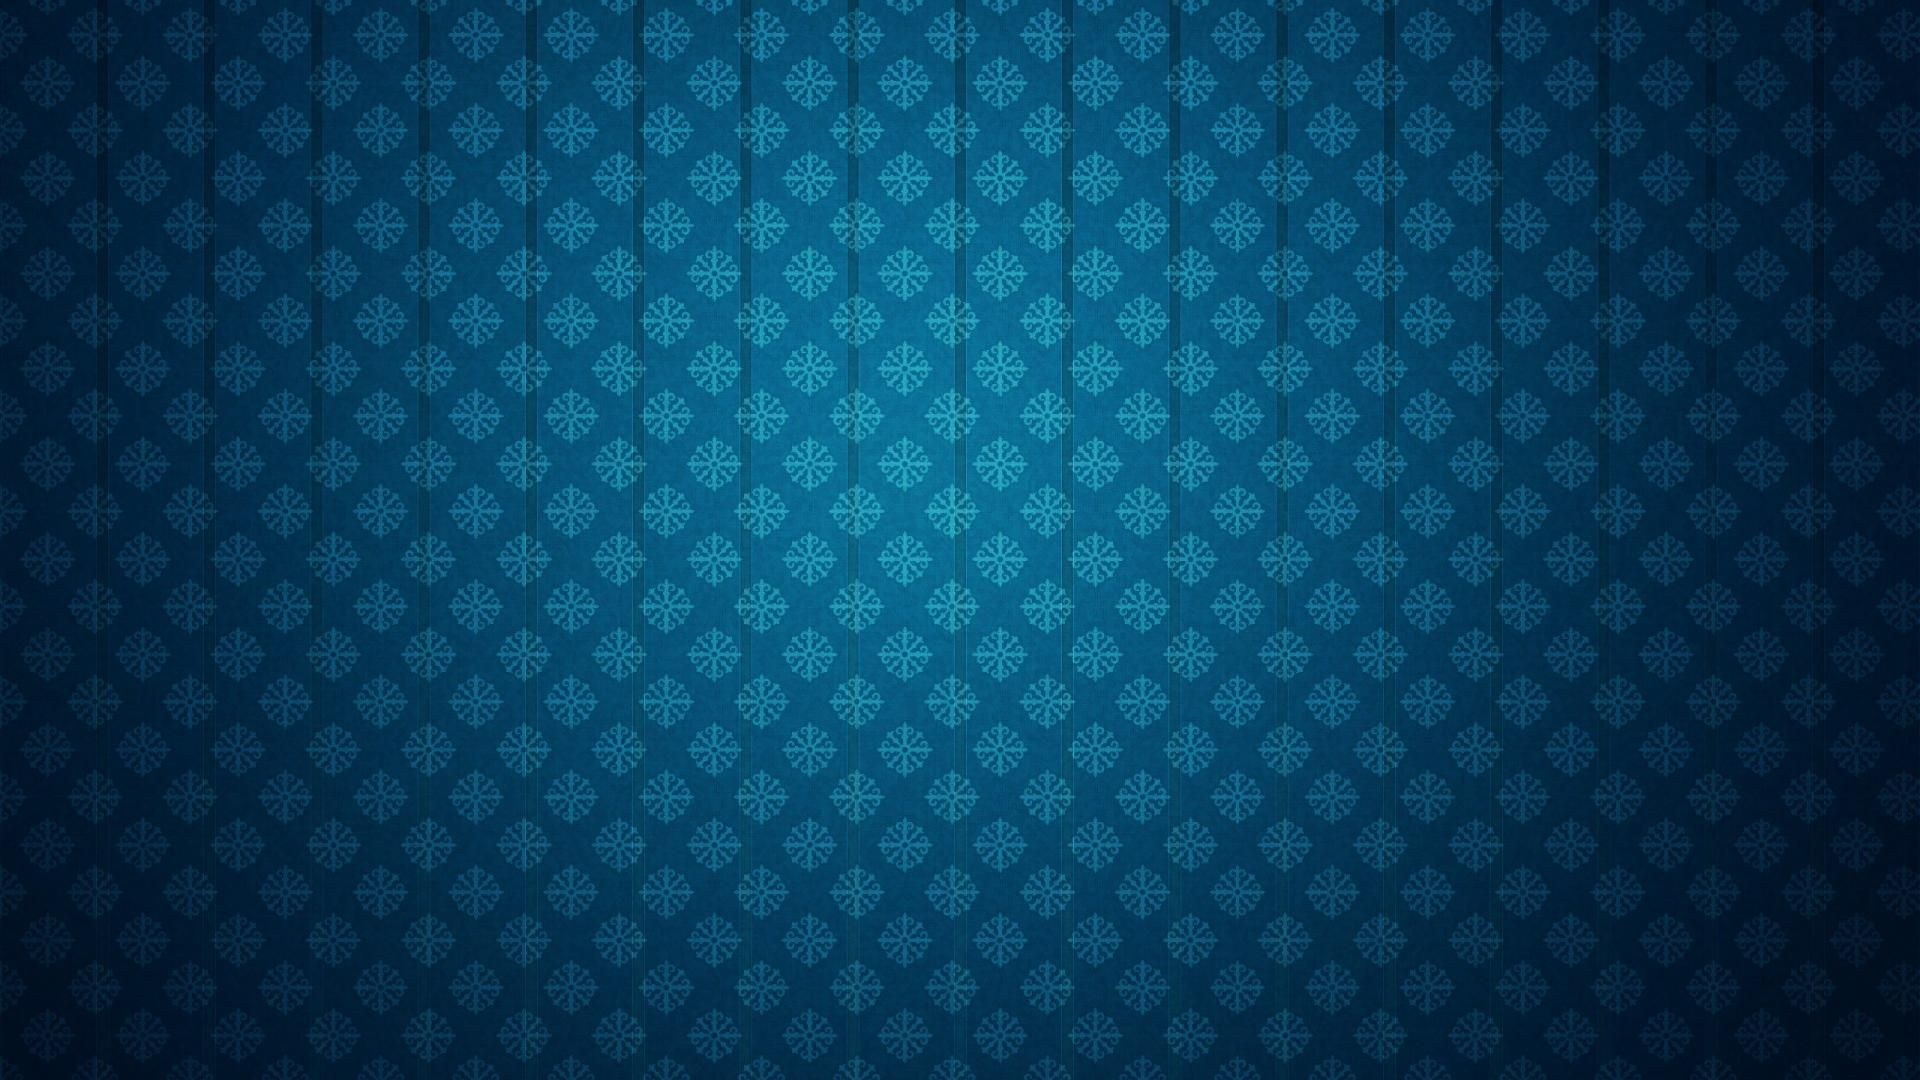 blue background hd designs 1920x1080 abstract beautiful blue design backgrounds wide wallpapers1280x8001440x900